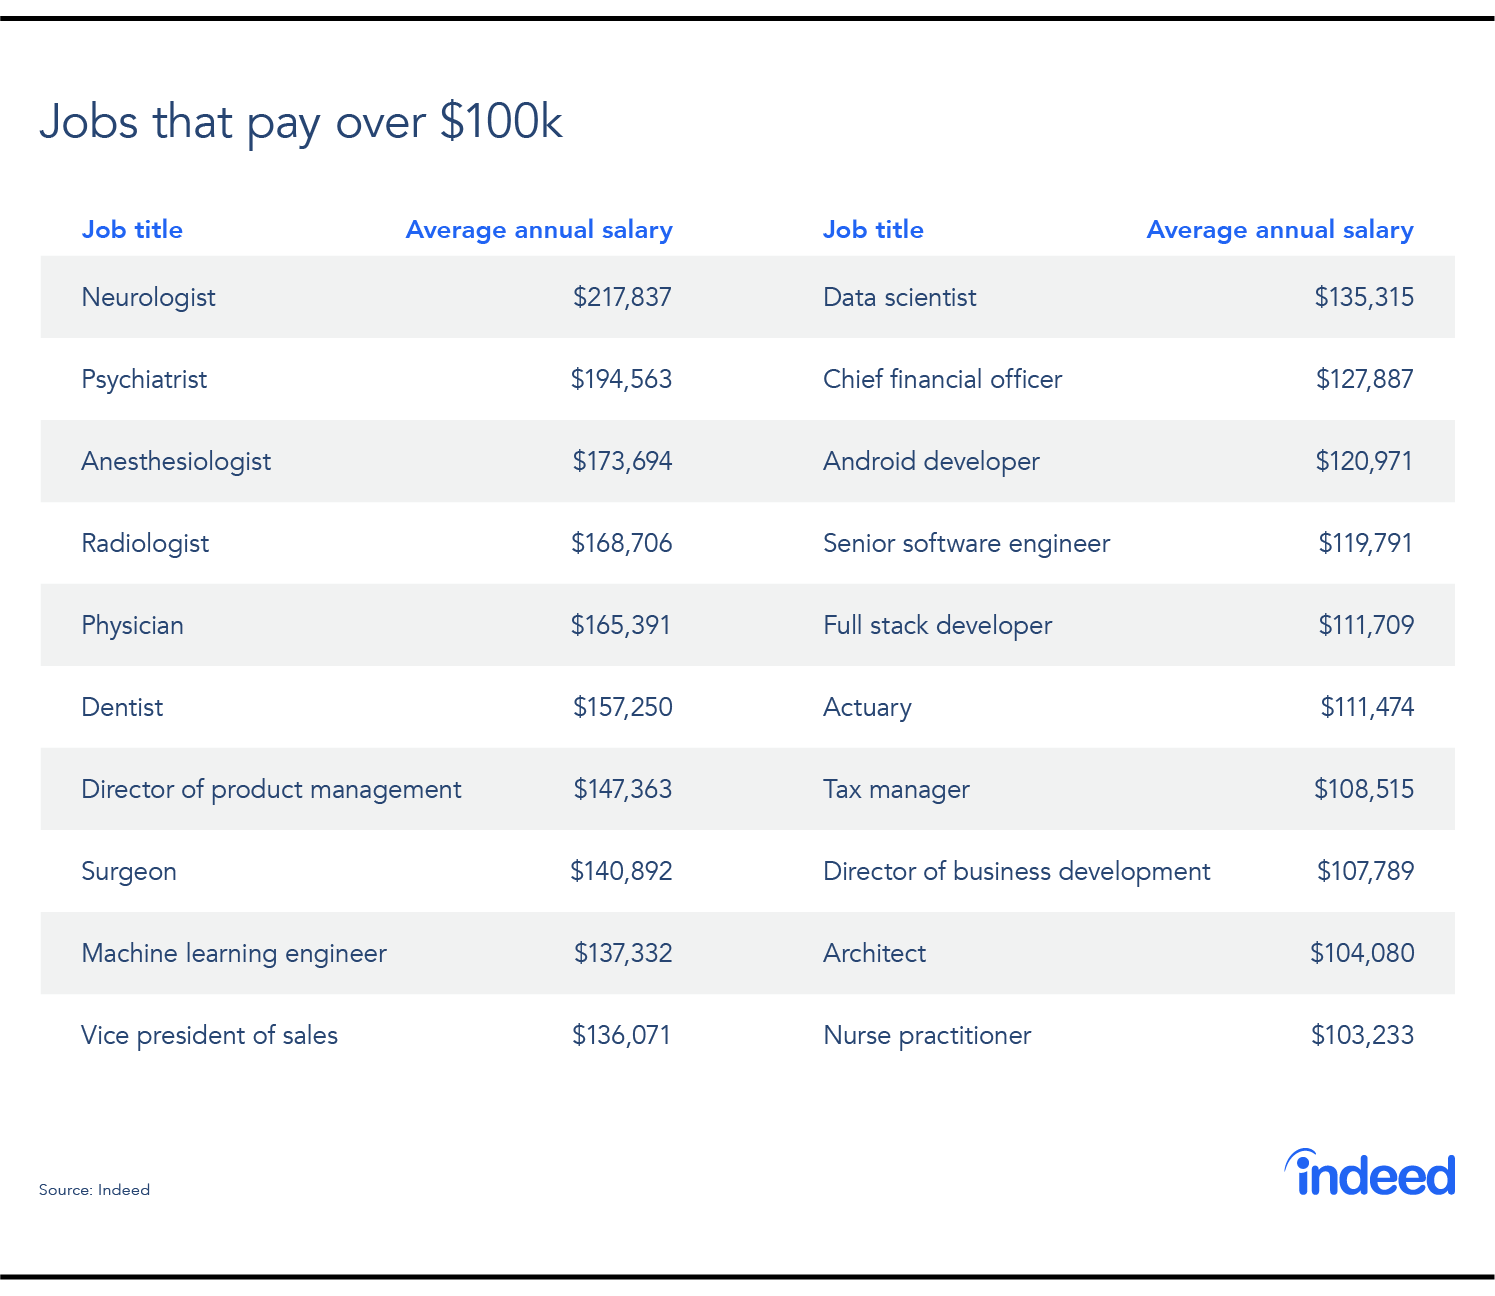 Table compiled of jobs that make an average annual salary of $100k or more.